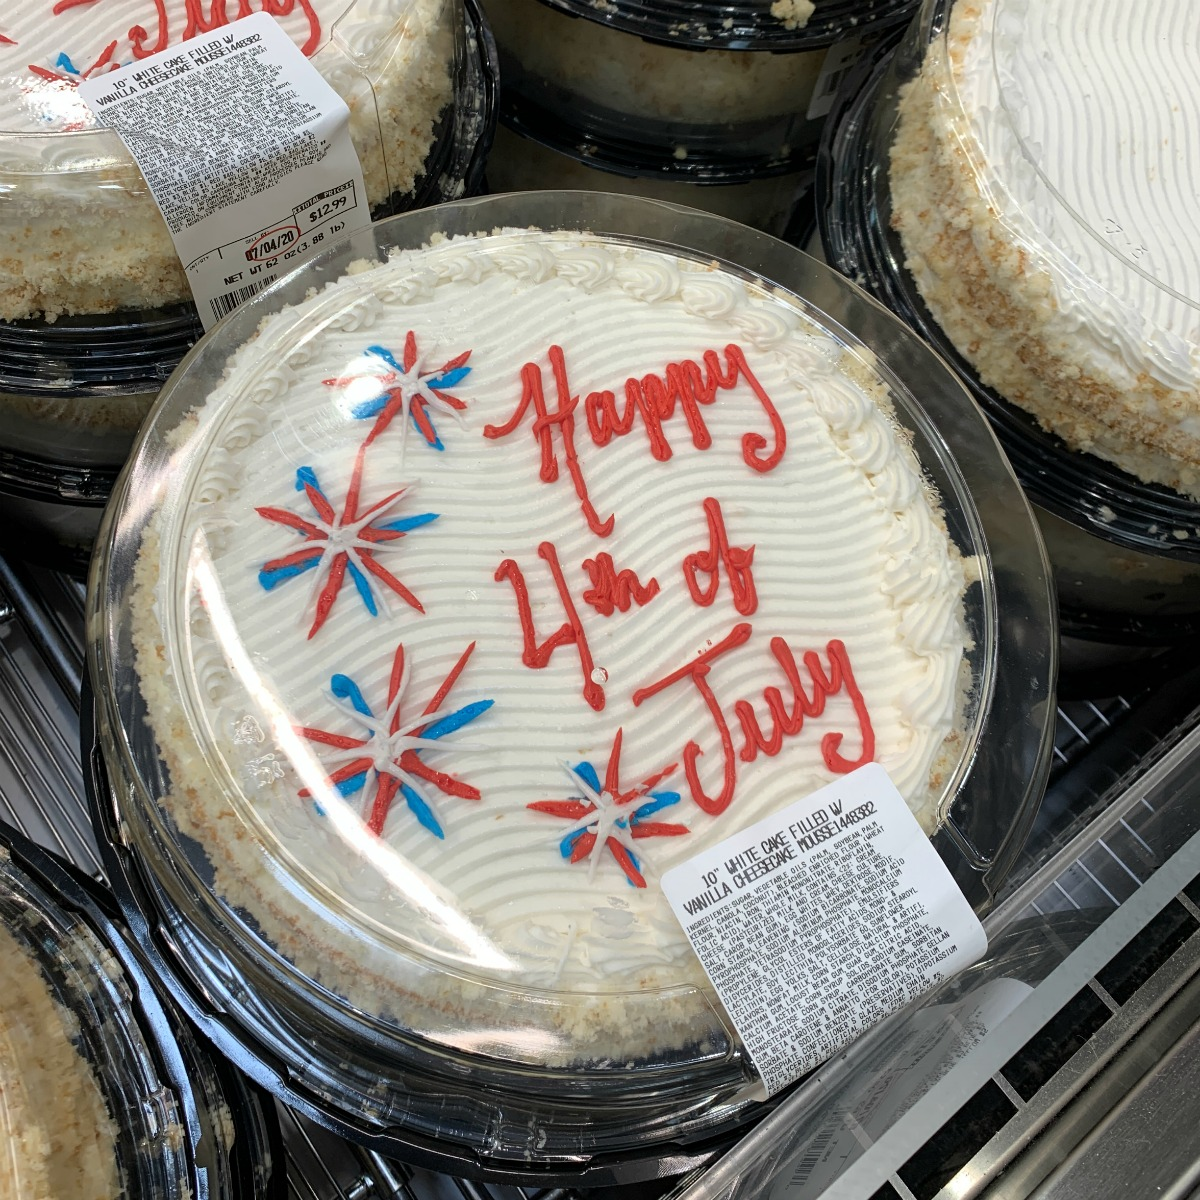 white cake from Costco that reads Happy 4th of July with fireworks